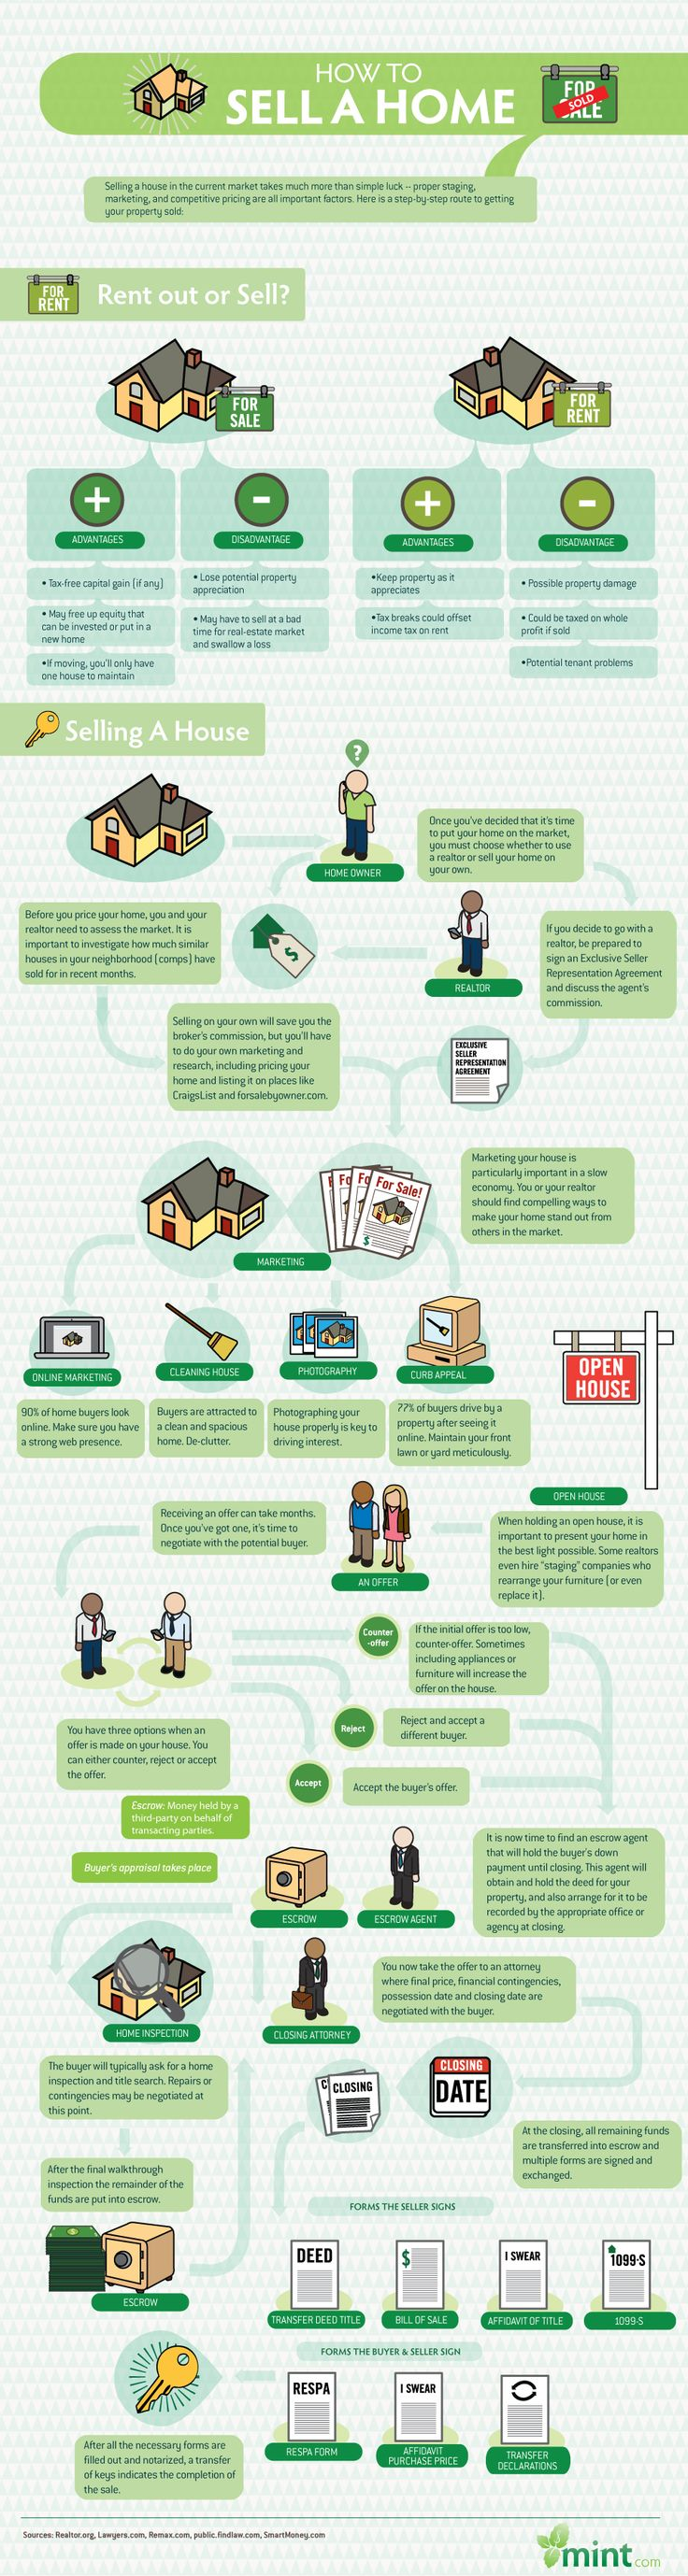 Explaining the home buying process in simple terms - infographic - AGBeat There's a lot more to it than just this....appraisal, home inspection/repairs, CL-100, etc. The contract is just the beginning!